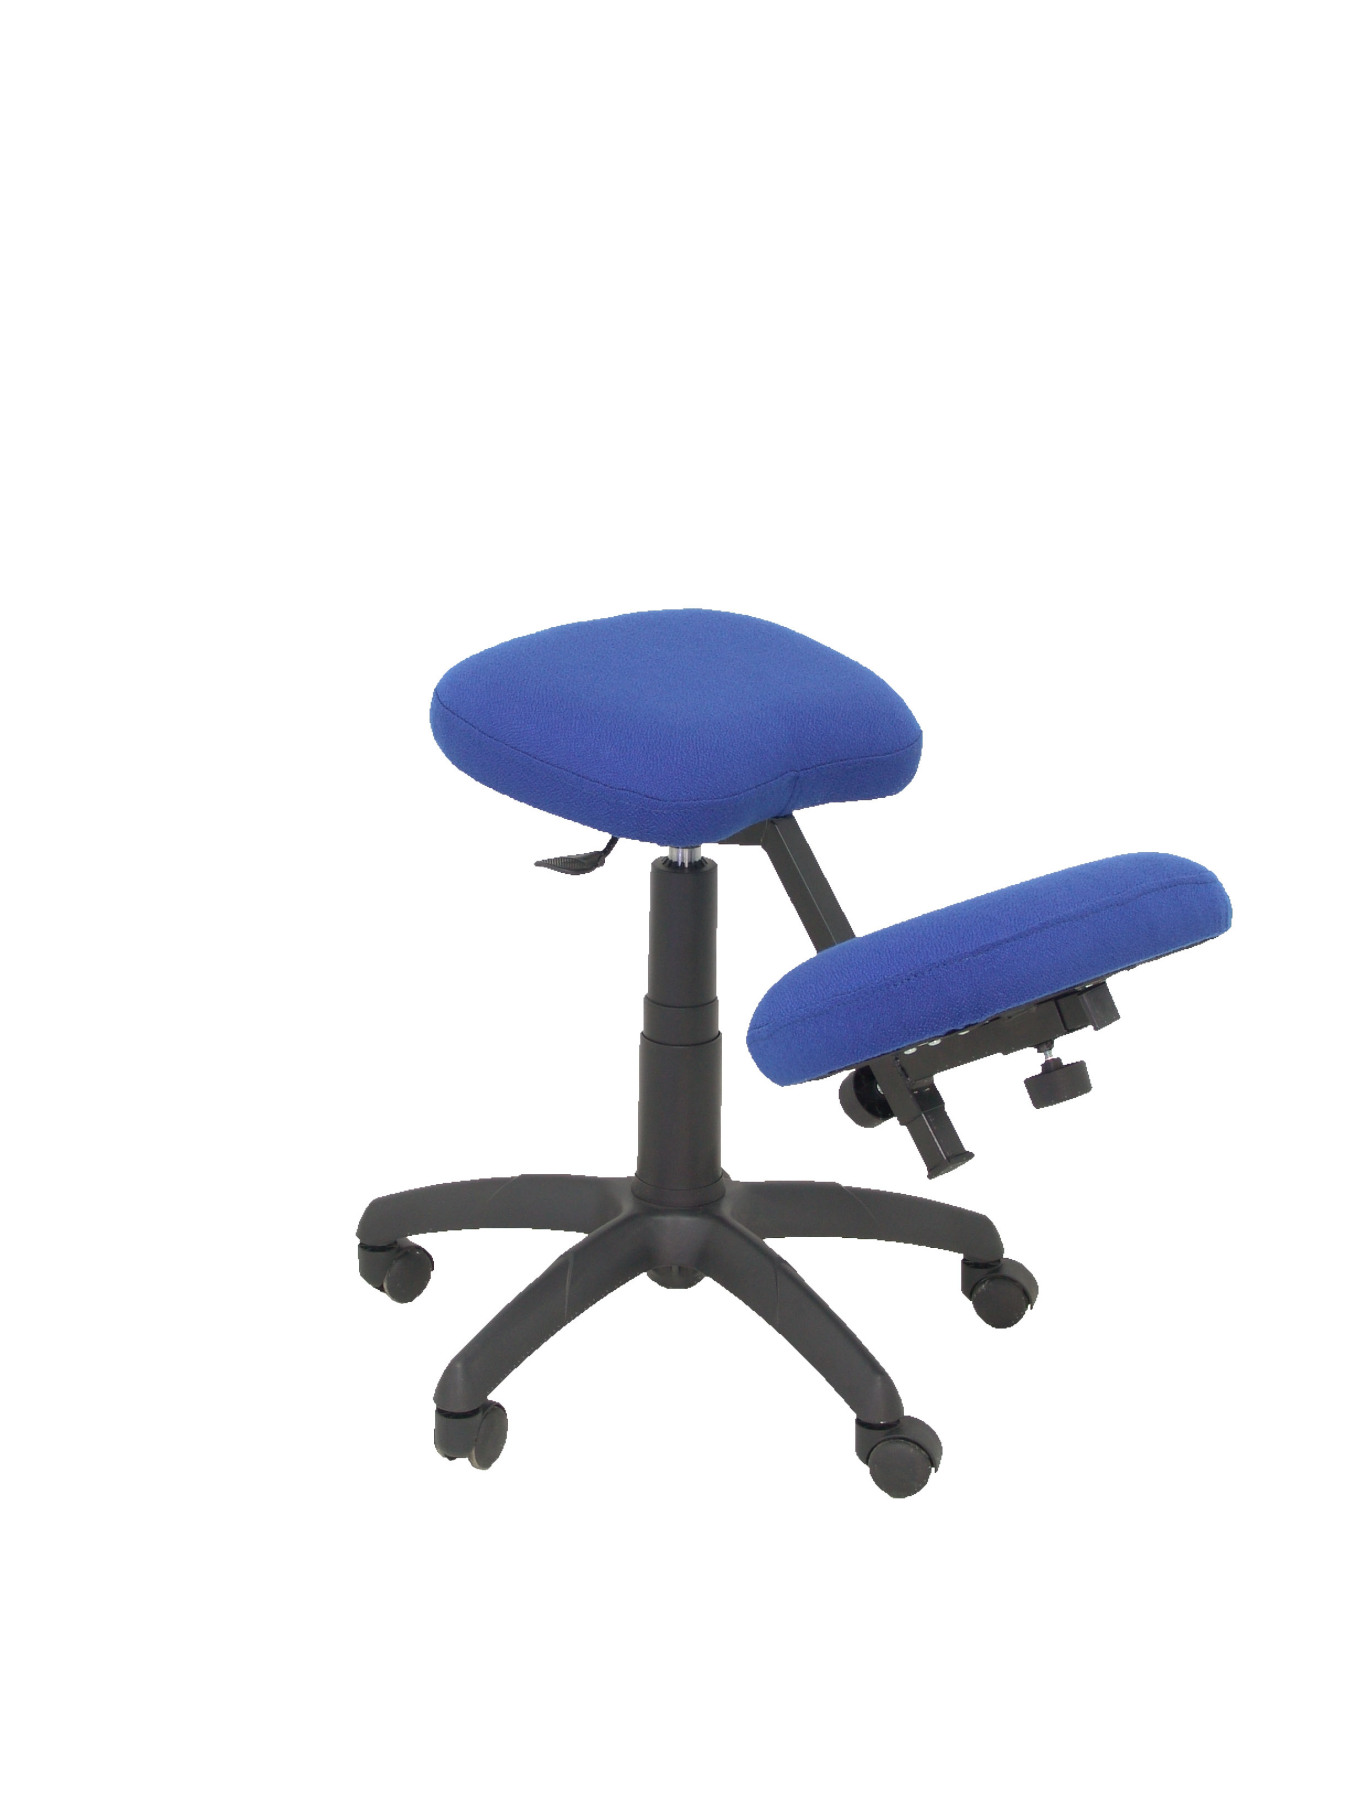 Office's Stool Ergonomic Swivel And Dimmable In High Altitude Up Seat Upholstered In BALI Tissue Color Blue (KNEE R